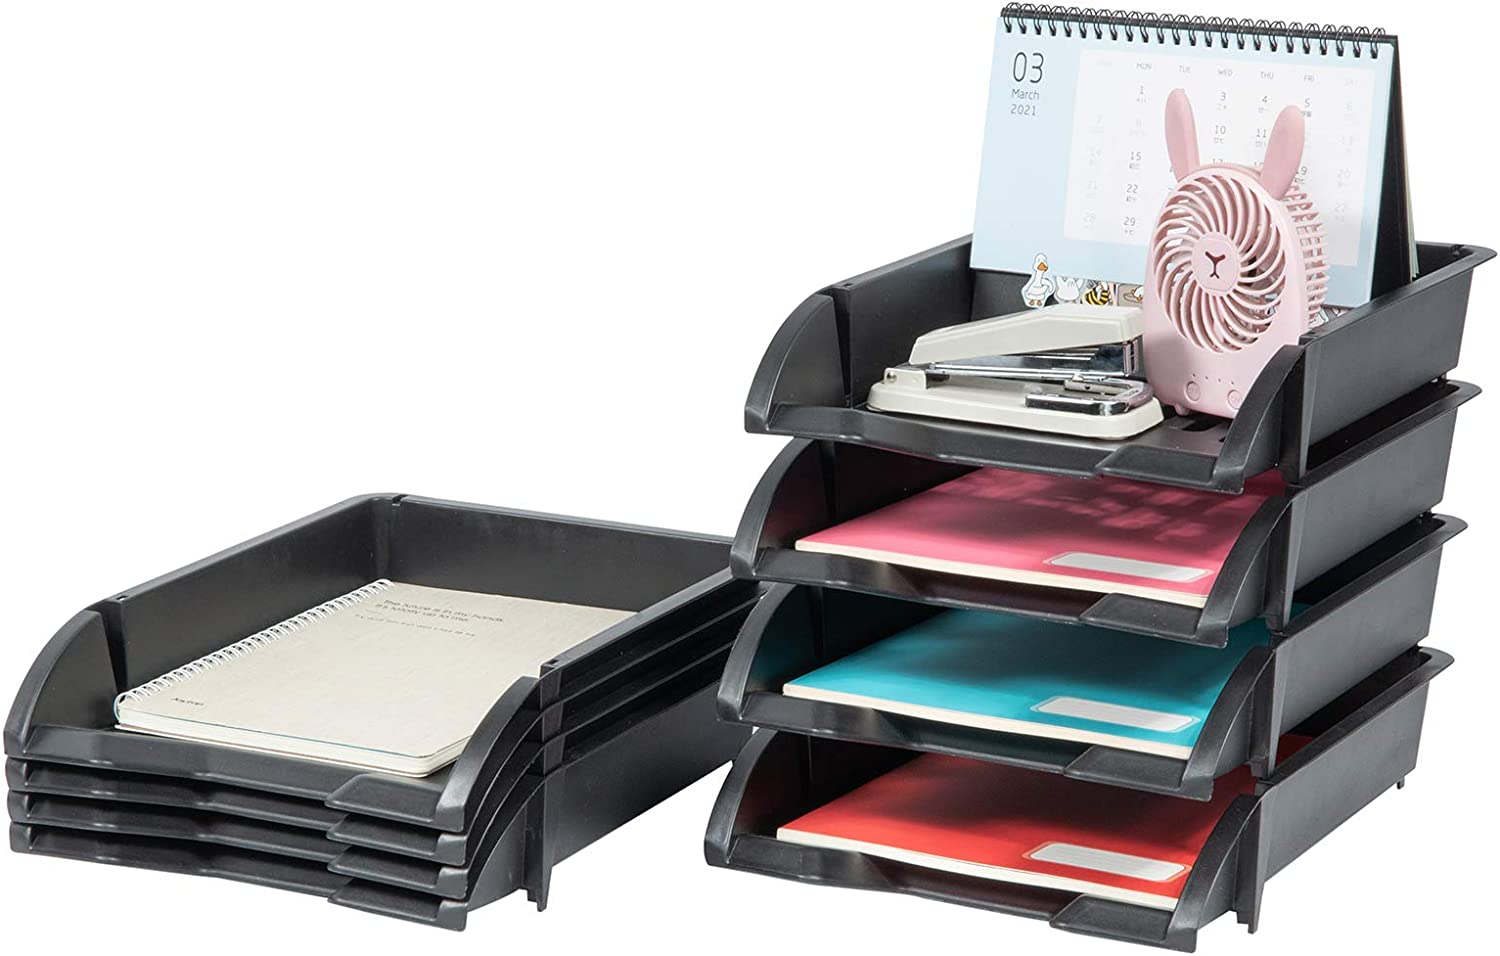 BYCY 8 Pack Stackable Letter Organizer 70% OFF Outlet Holder Paper Tray 2021 new Desktop